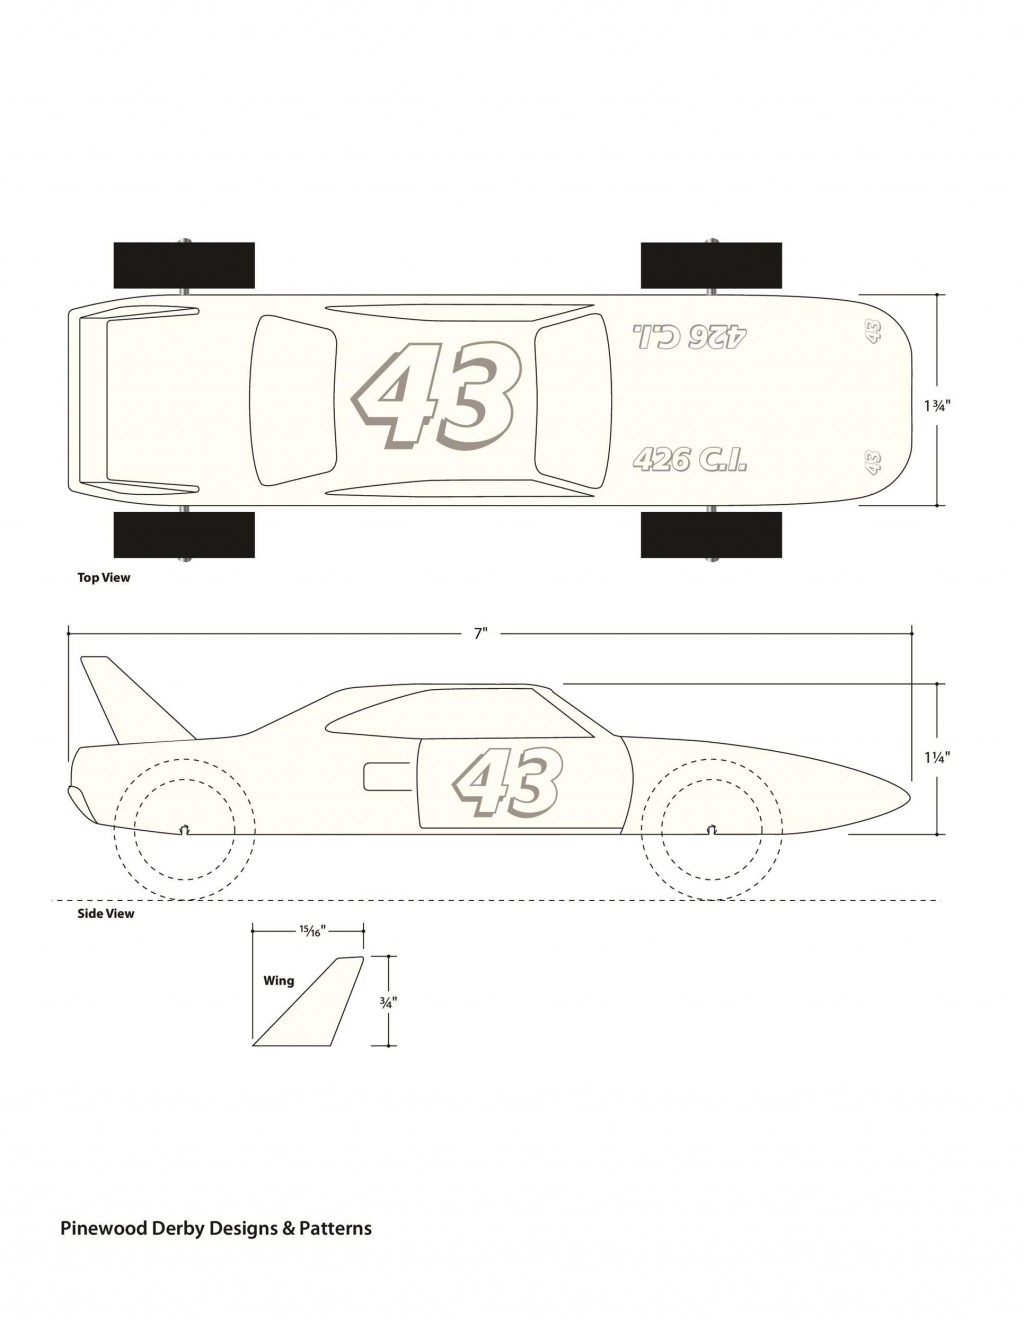 008 Astounding Fastest Pinewood Derby Car Template High Resolution  Templates World DesignLarge